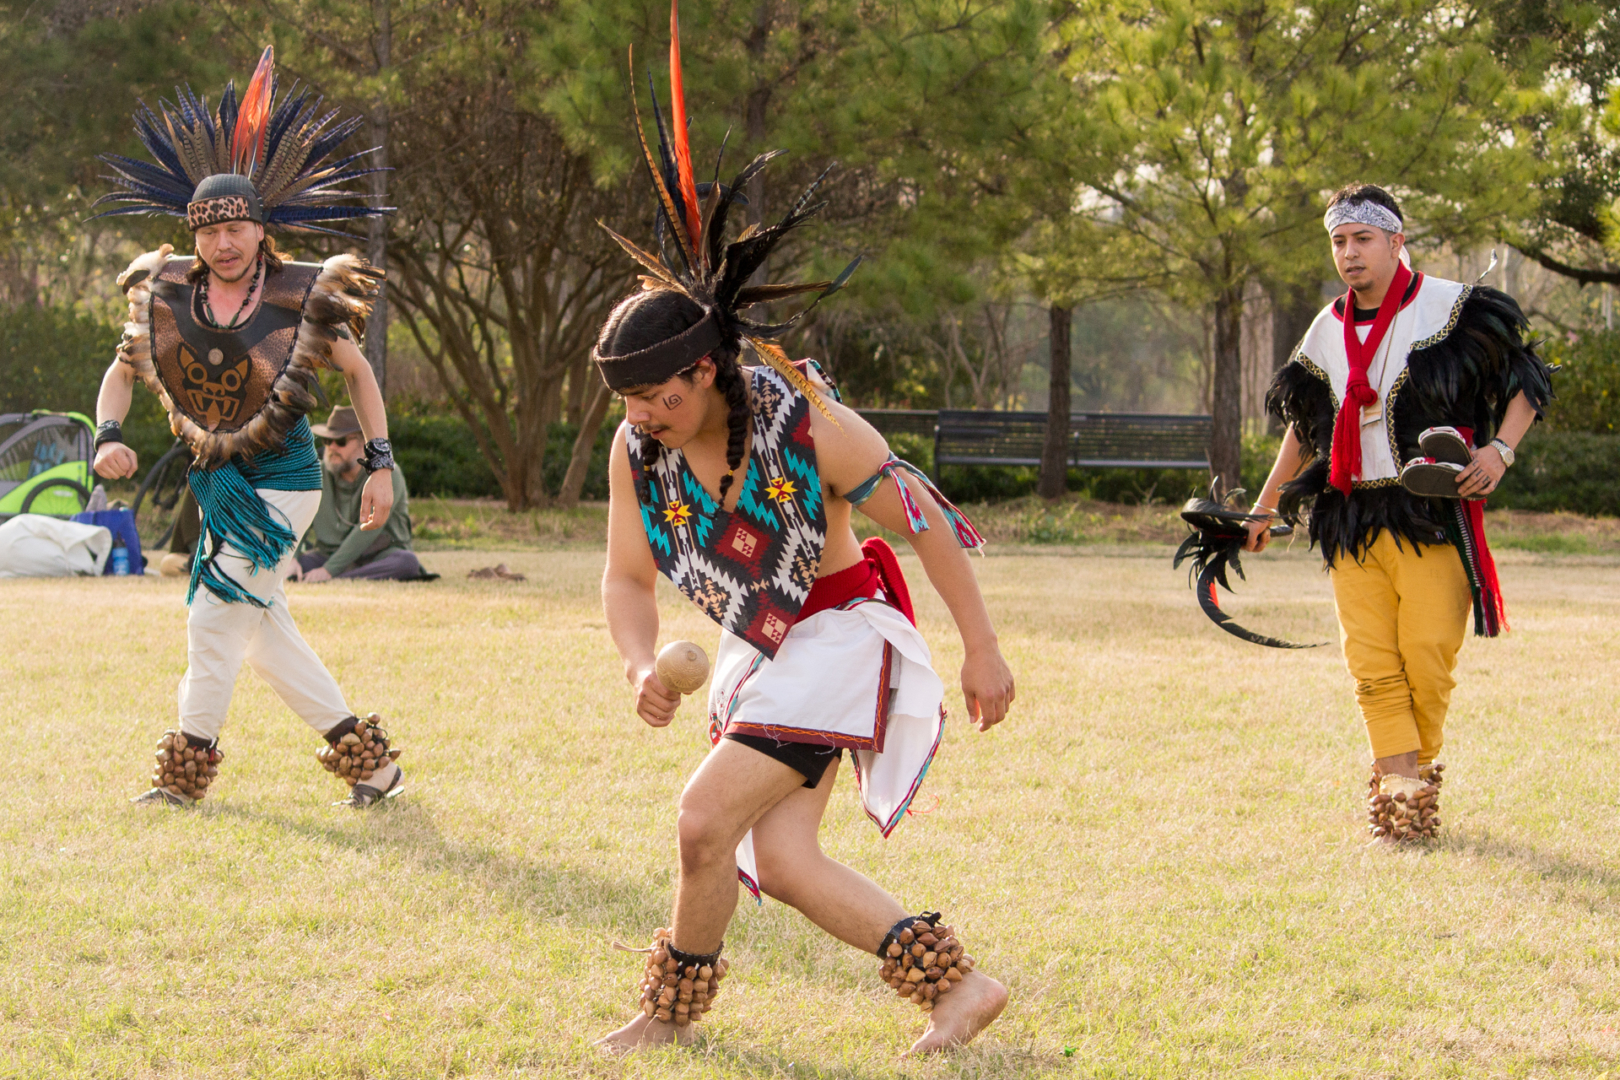 Jesus Navarro (left), Mauricio Turrubiartes III (center) and Uriel Garcia-Vega (right) of the Houston Aztec Dance group partake in a traditional dance ceremony to honor the last Mexica-Aztec tlatoani-leader, Cuauhtémoc. The group meets weekly to learn the Aztec traditions and ceremonies as a way to reconnect with their indigenous heritage. | Katrina Martinez/The Cougar